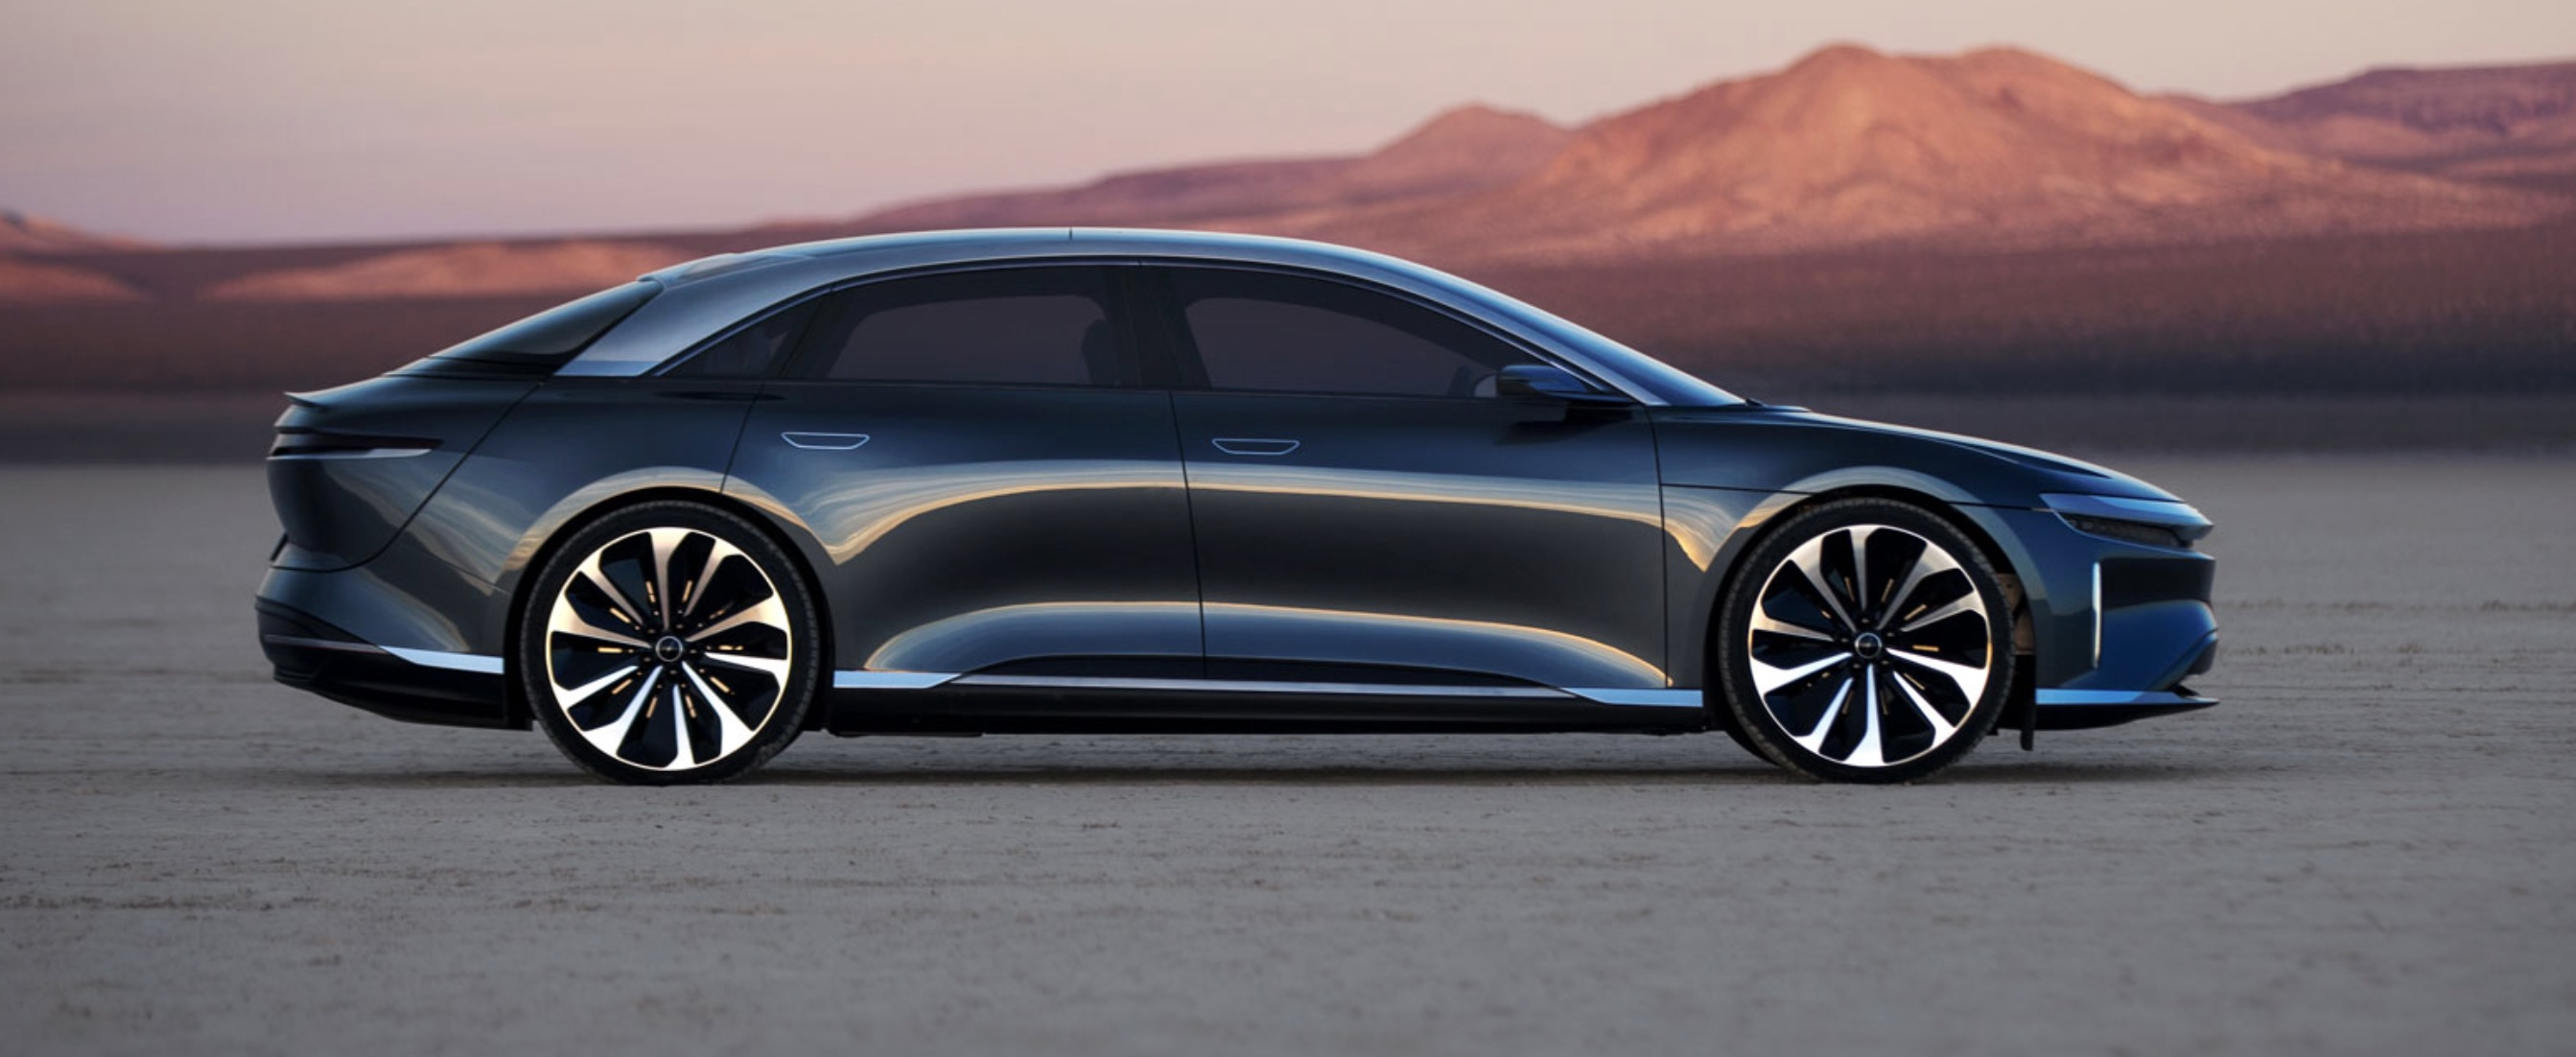 Lucid Tesla Hasn T Cracked It We Can Take It To Whole New Level Of Range And Efficiency Electrek